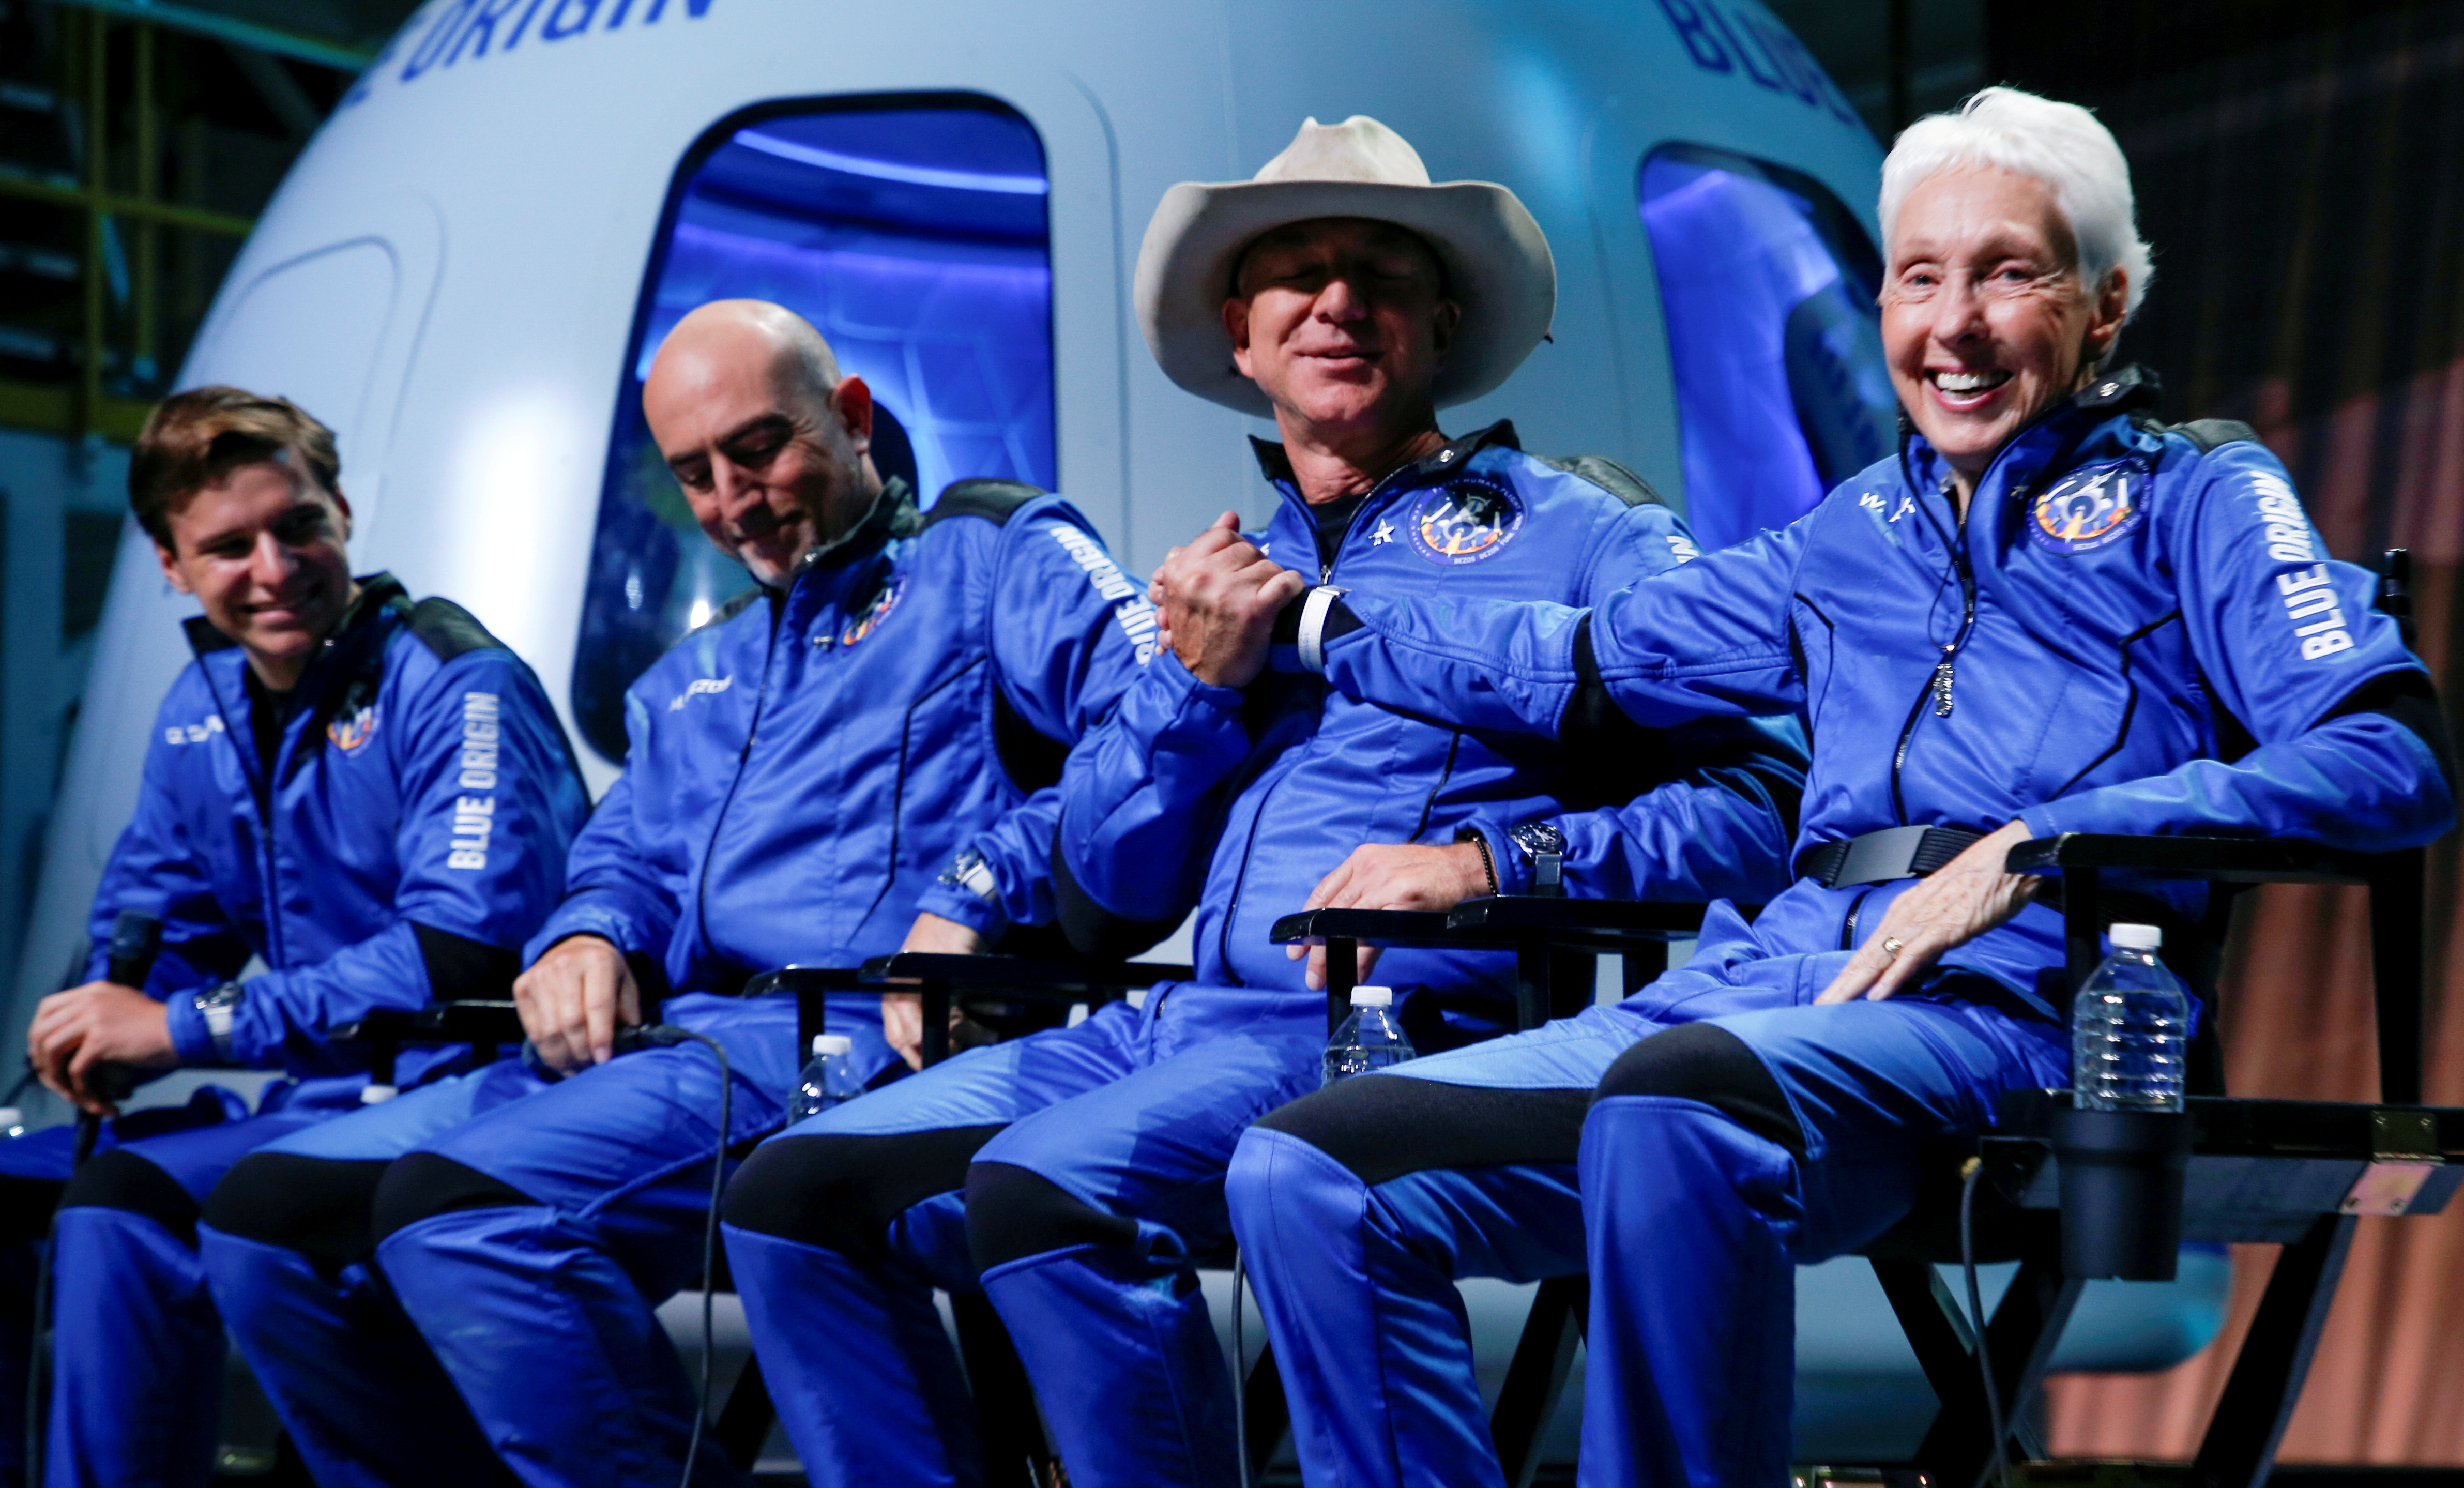 Billionaire American businessman Jeff Bezos (3rd-L) shakes hands with Wally Funk, who became the oldest person in space with other crew mates Oliver Daemen (L) and Mark Bezos (2nd-L) at a post-launch press conference after they flew on Blue Origin's inaugural flight to the edge of space, in the nearby town of Van Horn, Texas, U.S. July 20, 2021.   REUTERS/Joe Skipper